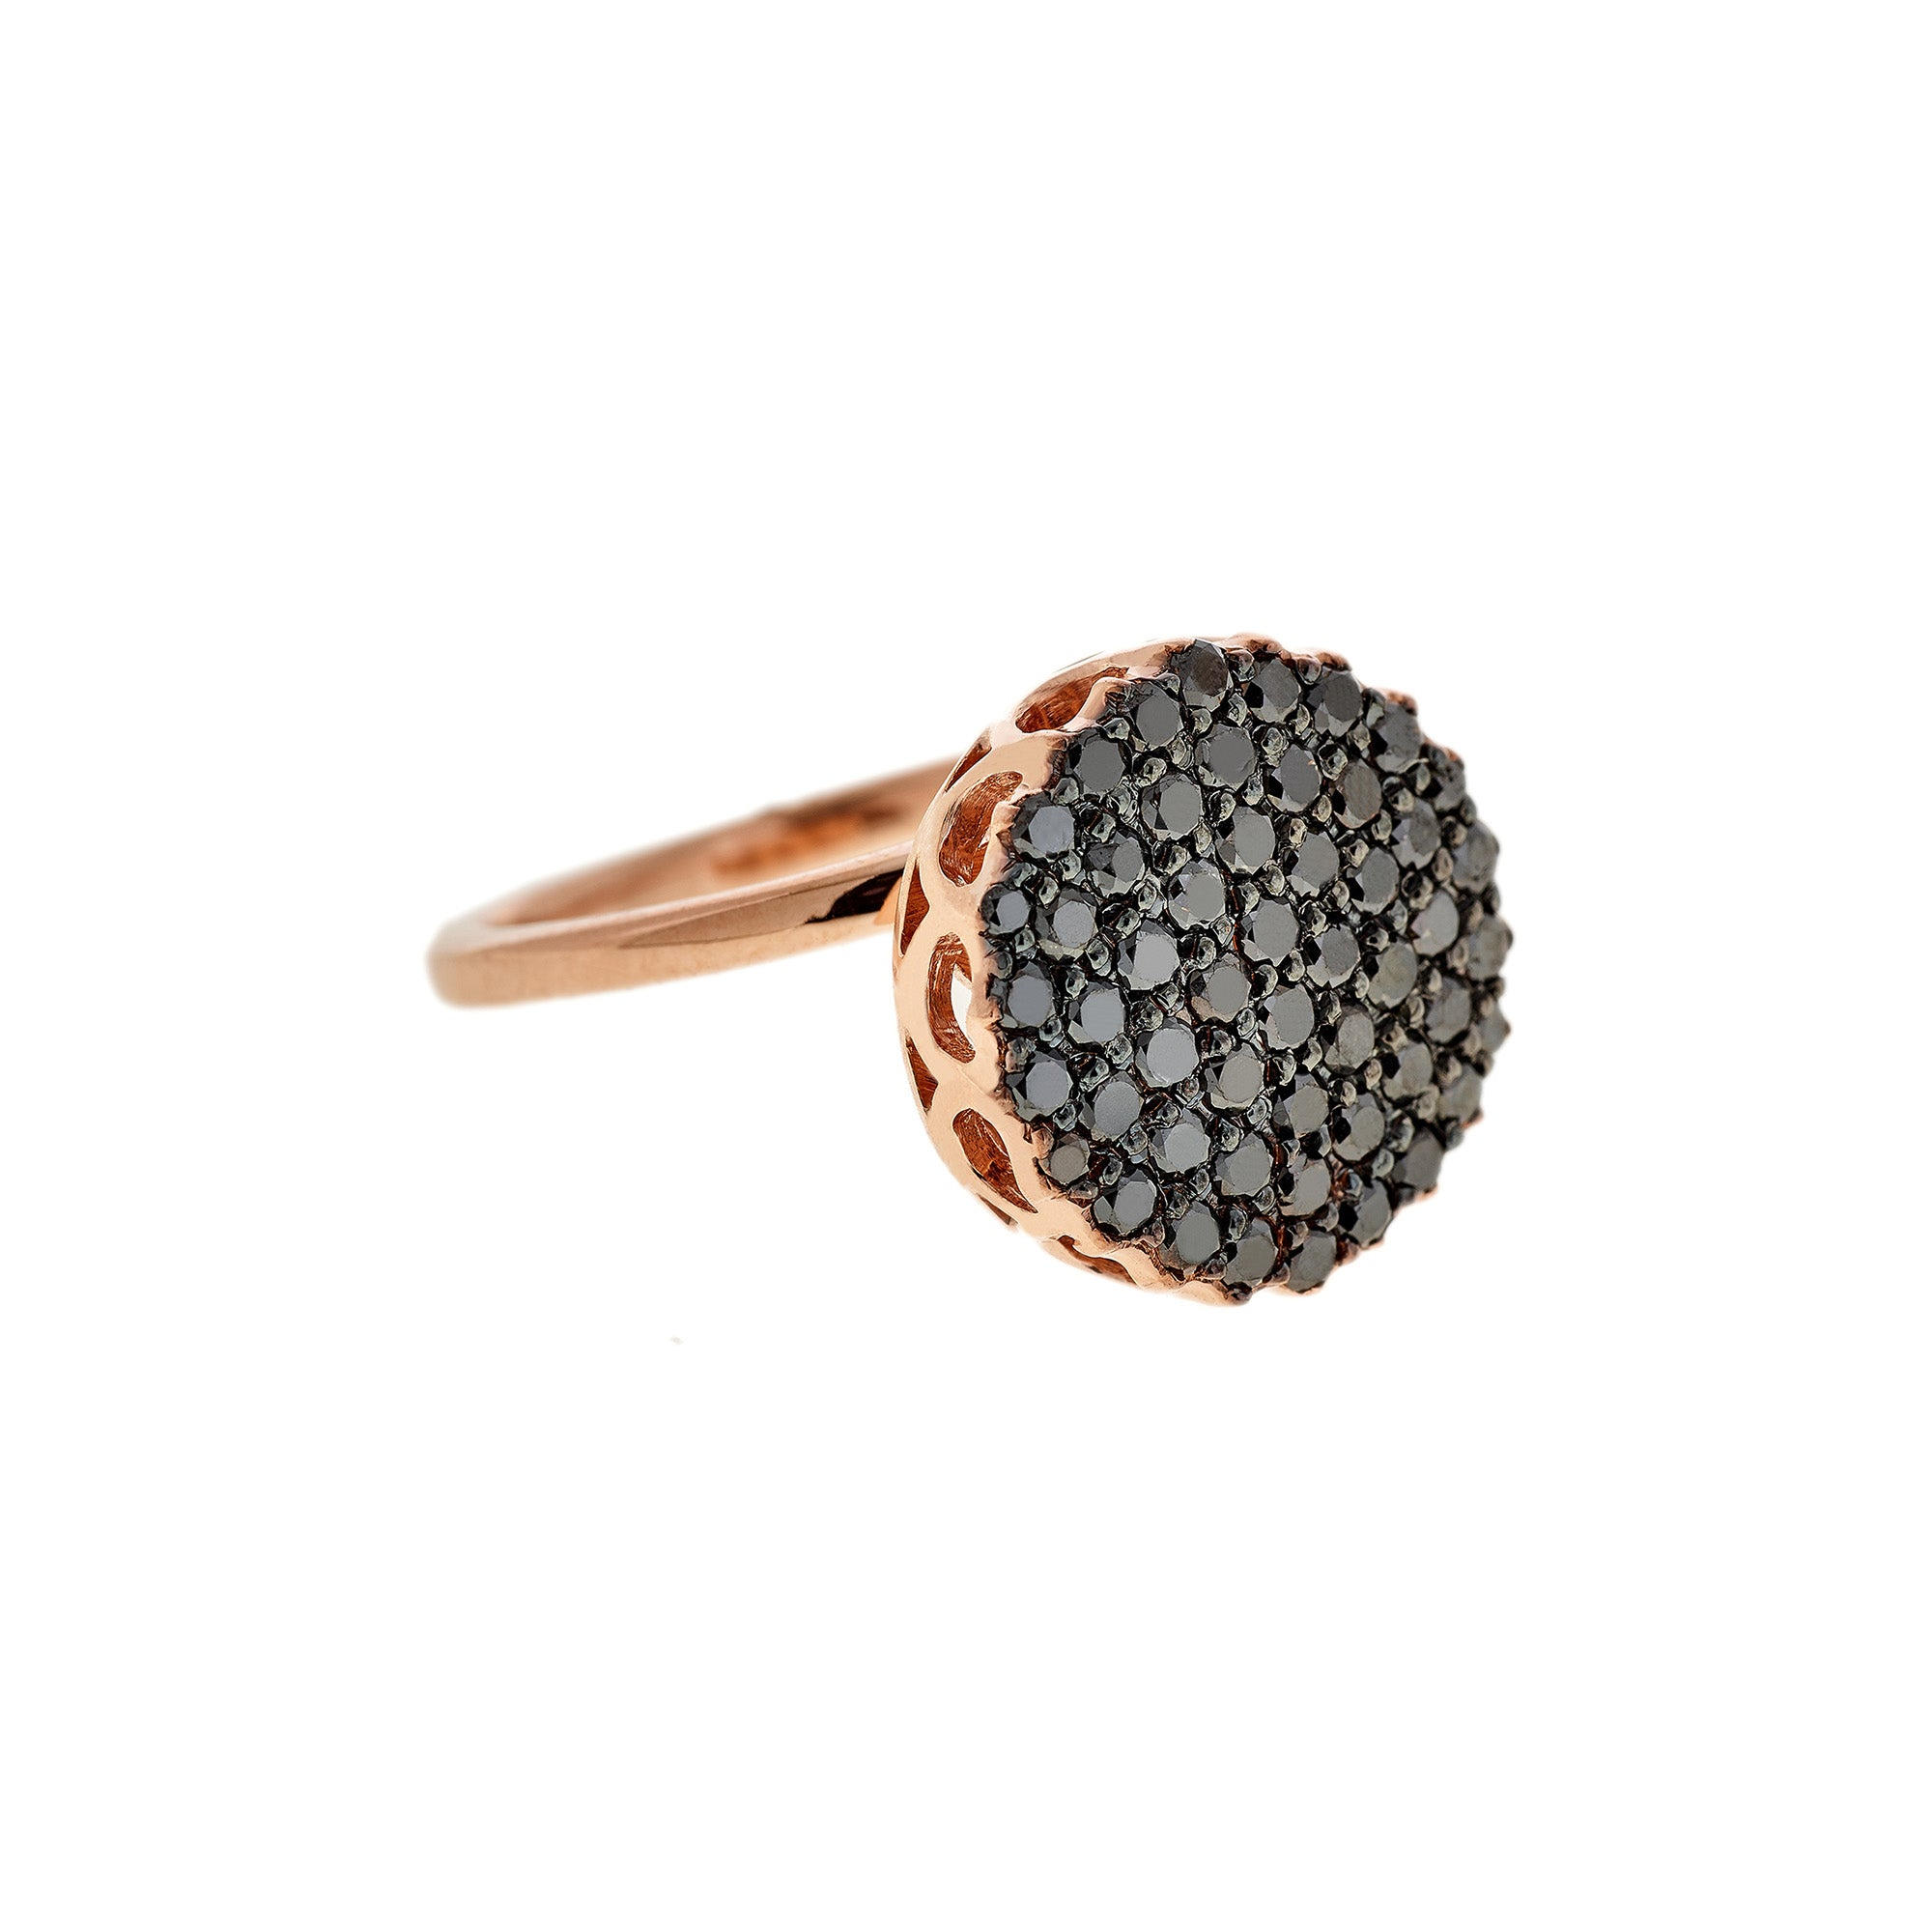 Black Diamond Ring by Selim Mouzannar for Broken English Jewelry